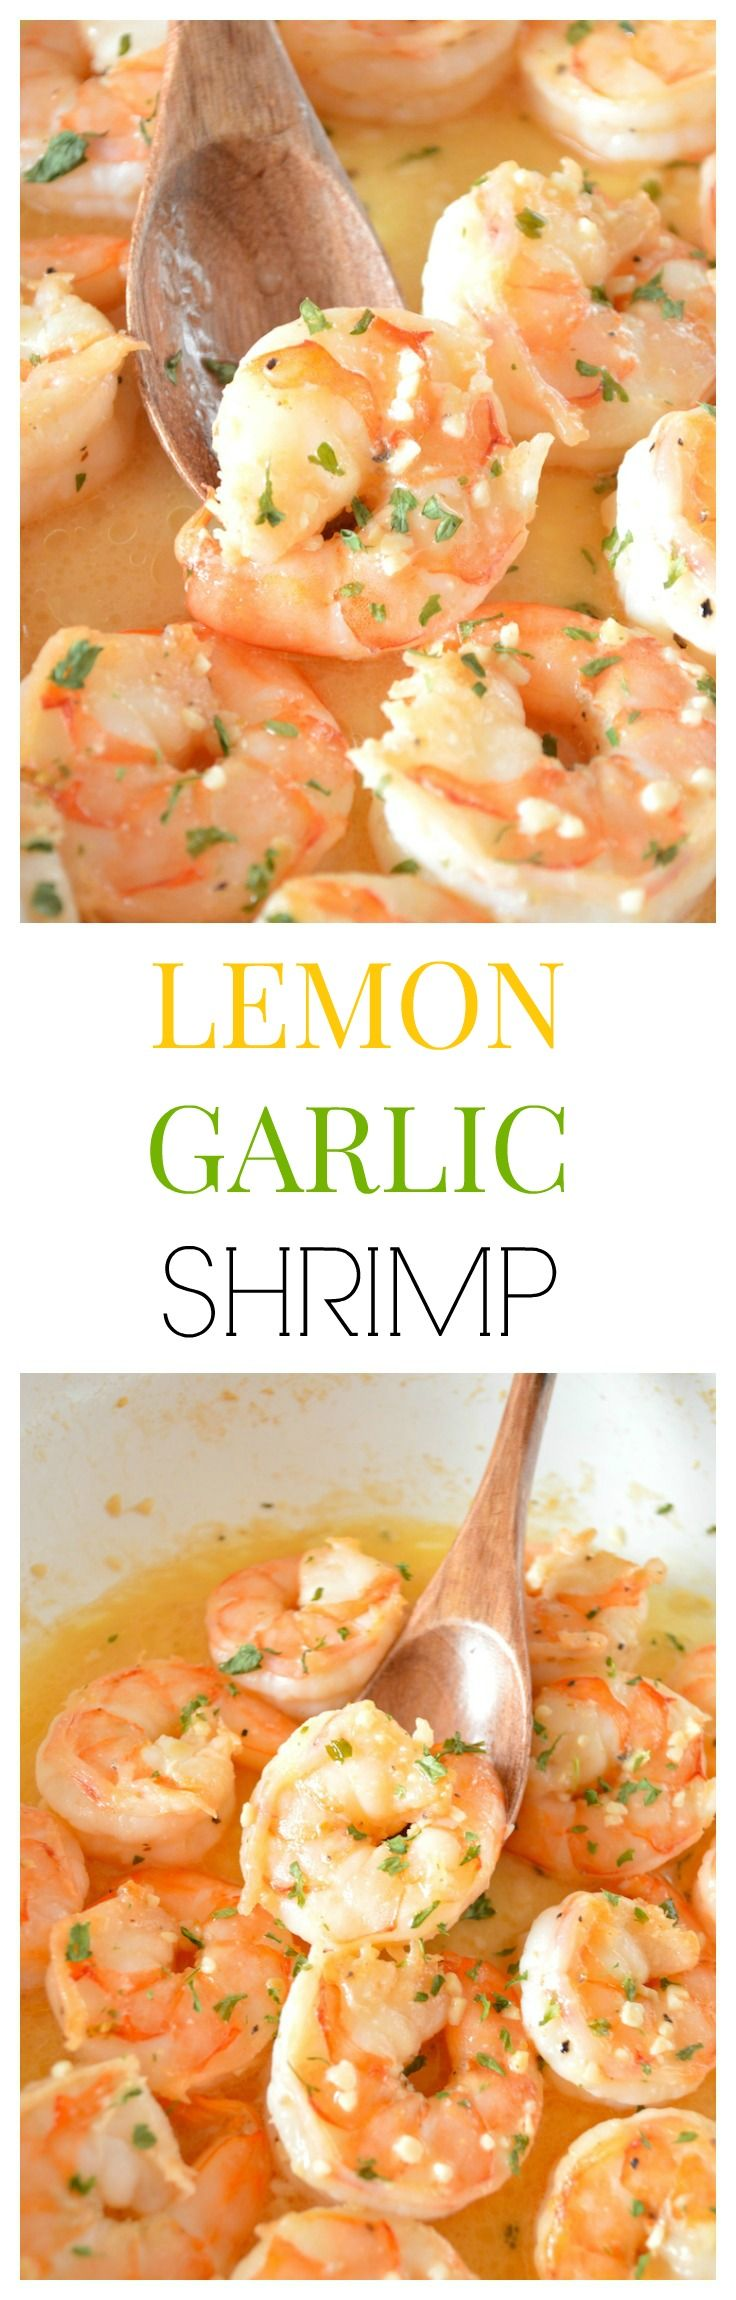 Lemon Garlic Shrimp - succulent shrimp drenched in a tangy buttery sauce packed with garlic and citrus lemon flavor!